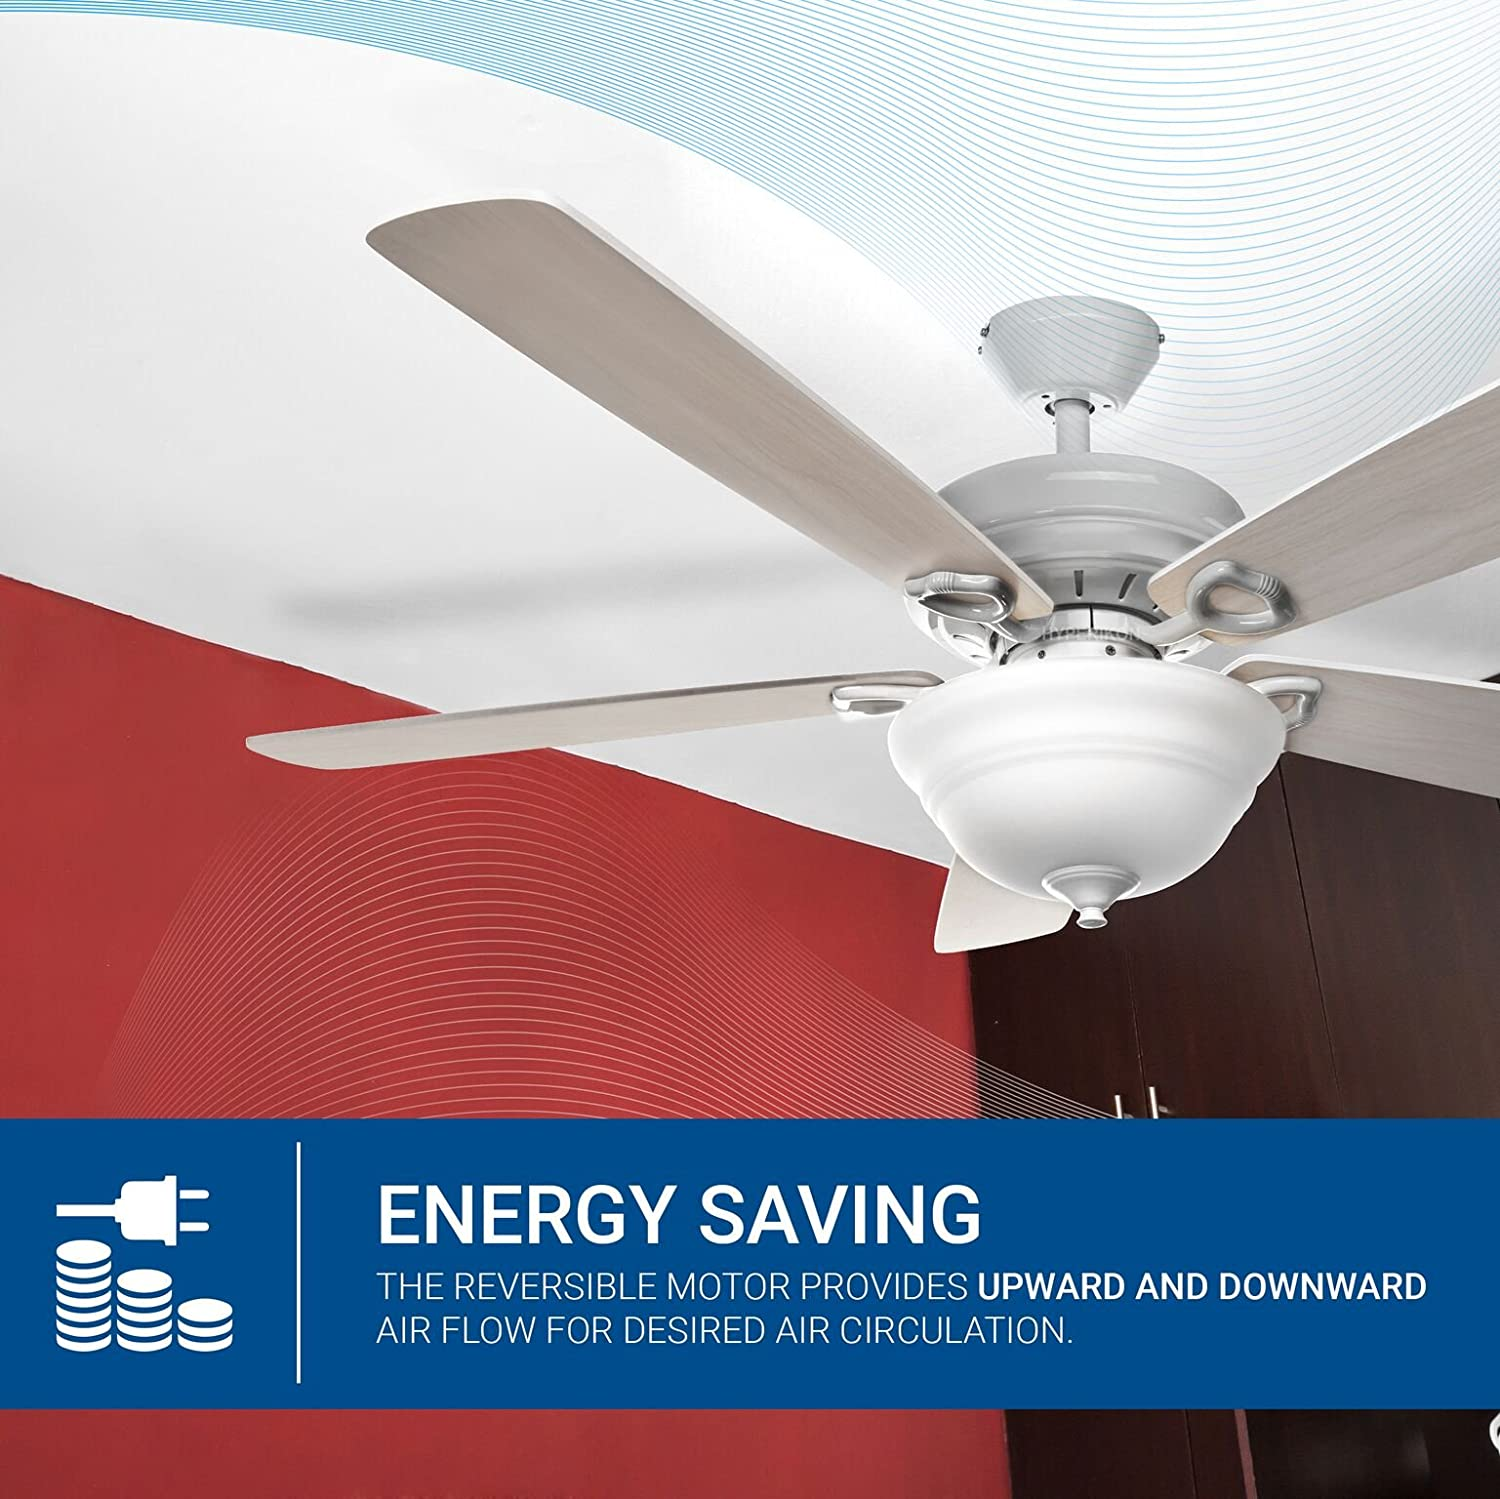 Hyperikon 52 Inch Ceiling Fan With Remote Control White How To Install A Light Kit On 7 Steps Indoor Five Reversible Blades And Frosted Dome Bulb Not Included Amazon